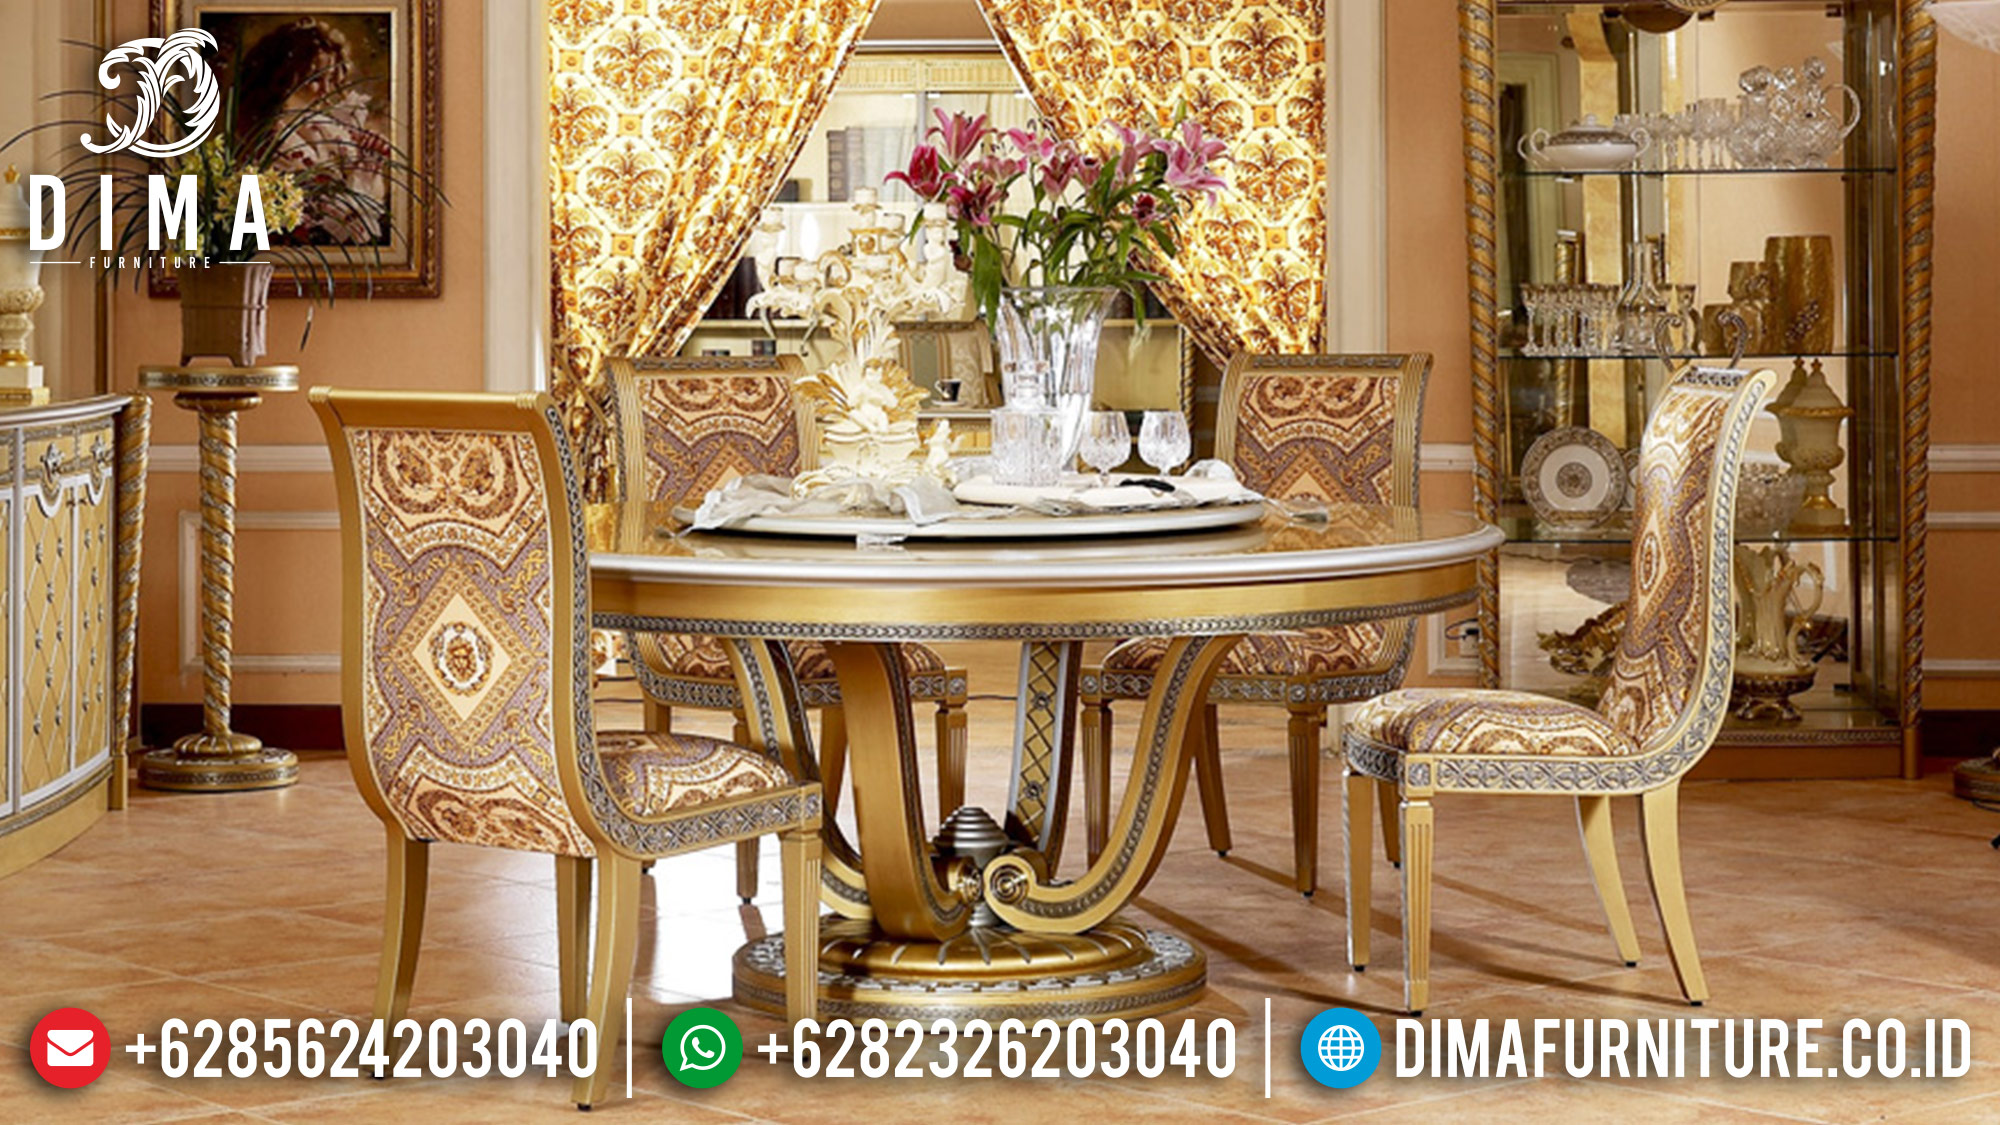 Luxury Furniture Set Meja Makan Mewah Jepara Duco Emas Silver MM-0257